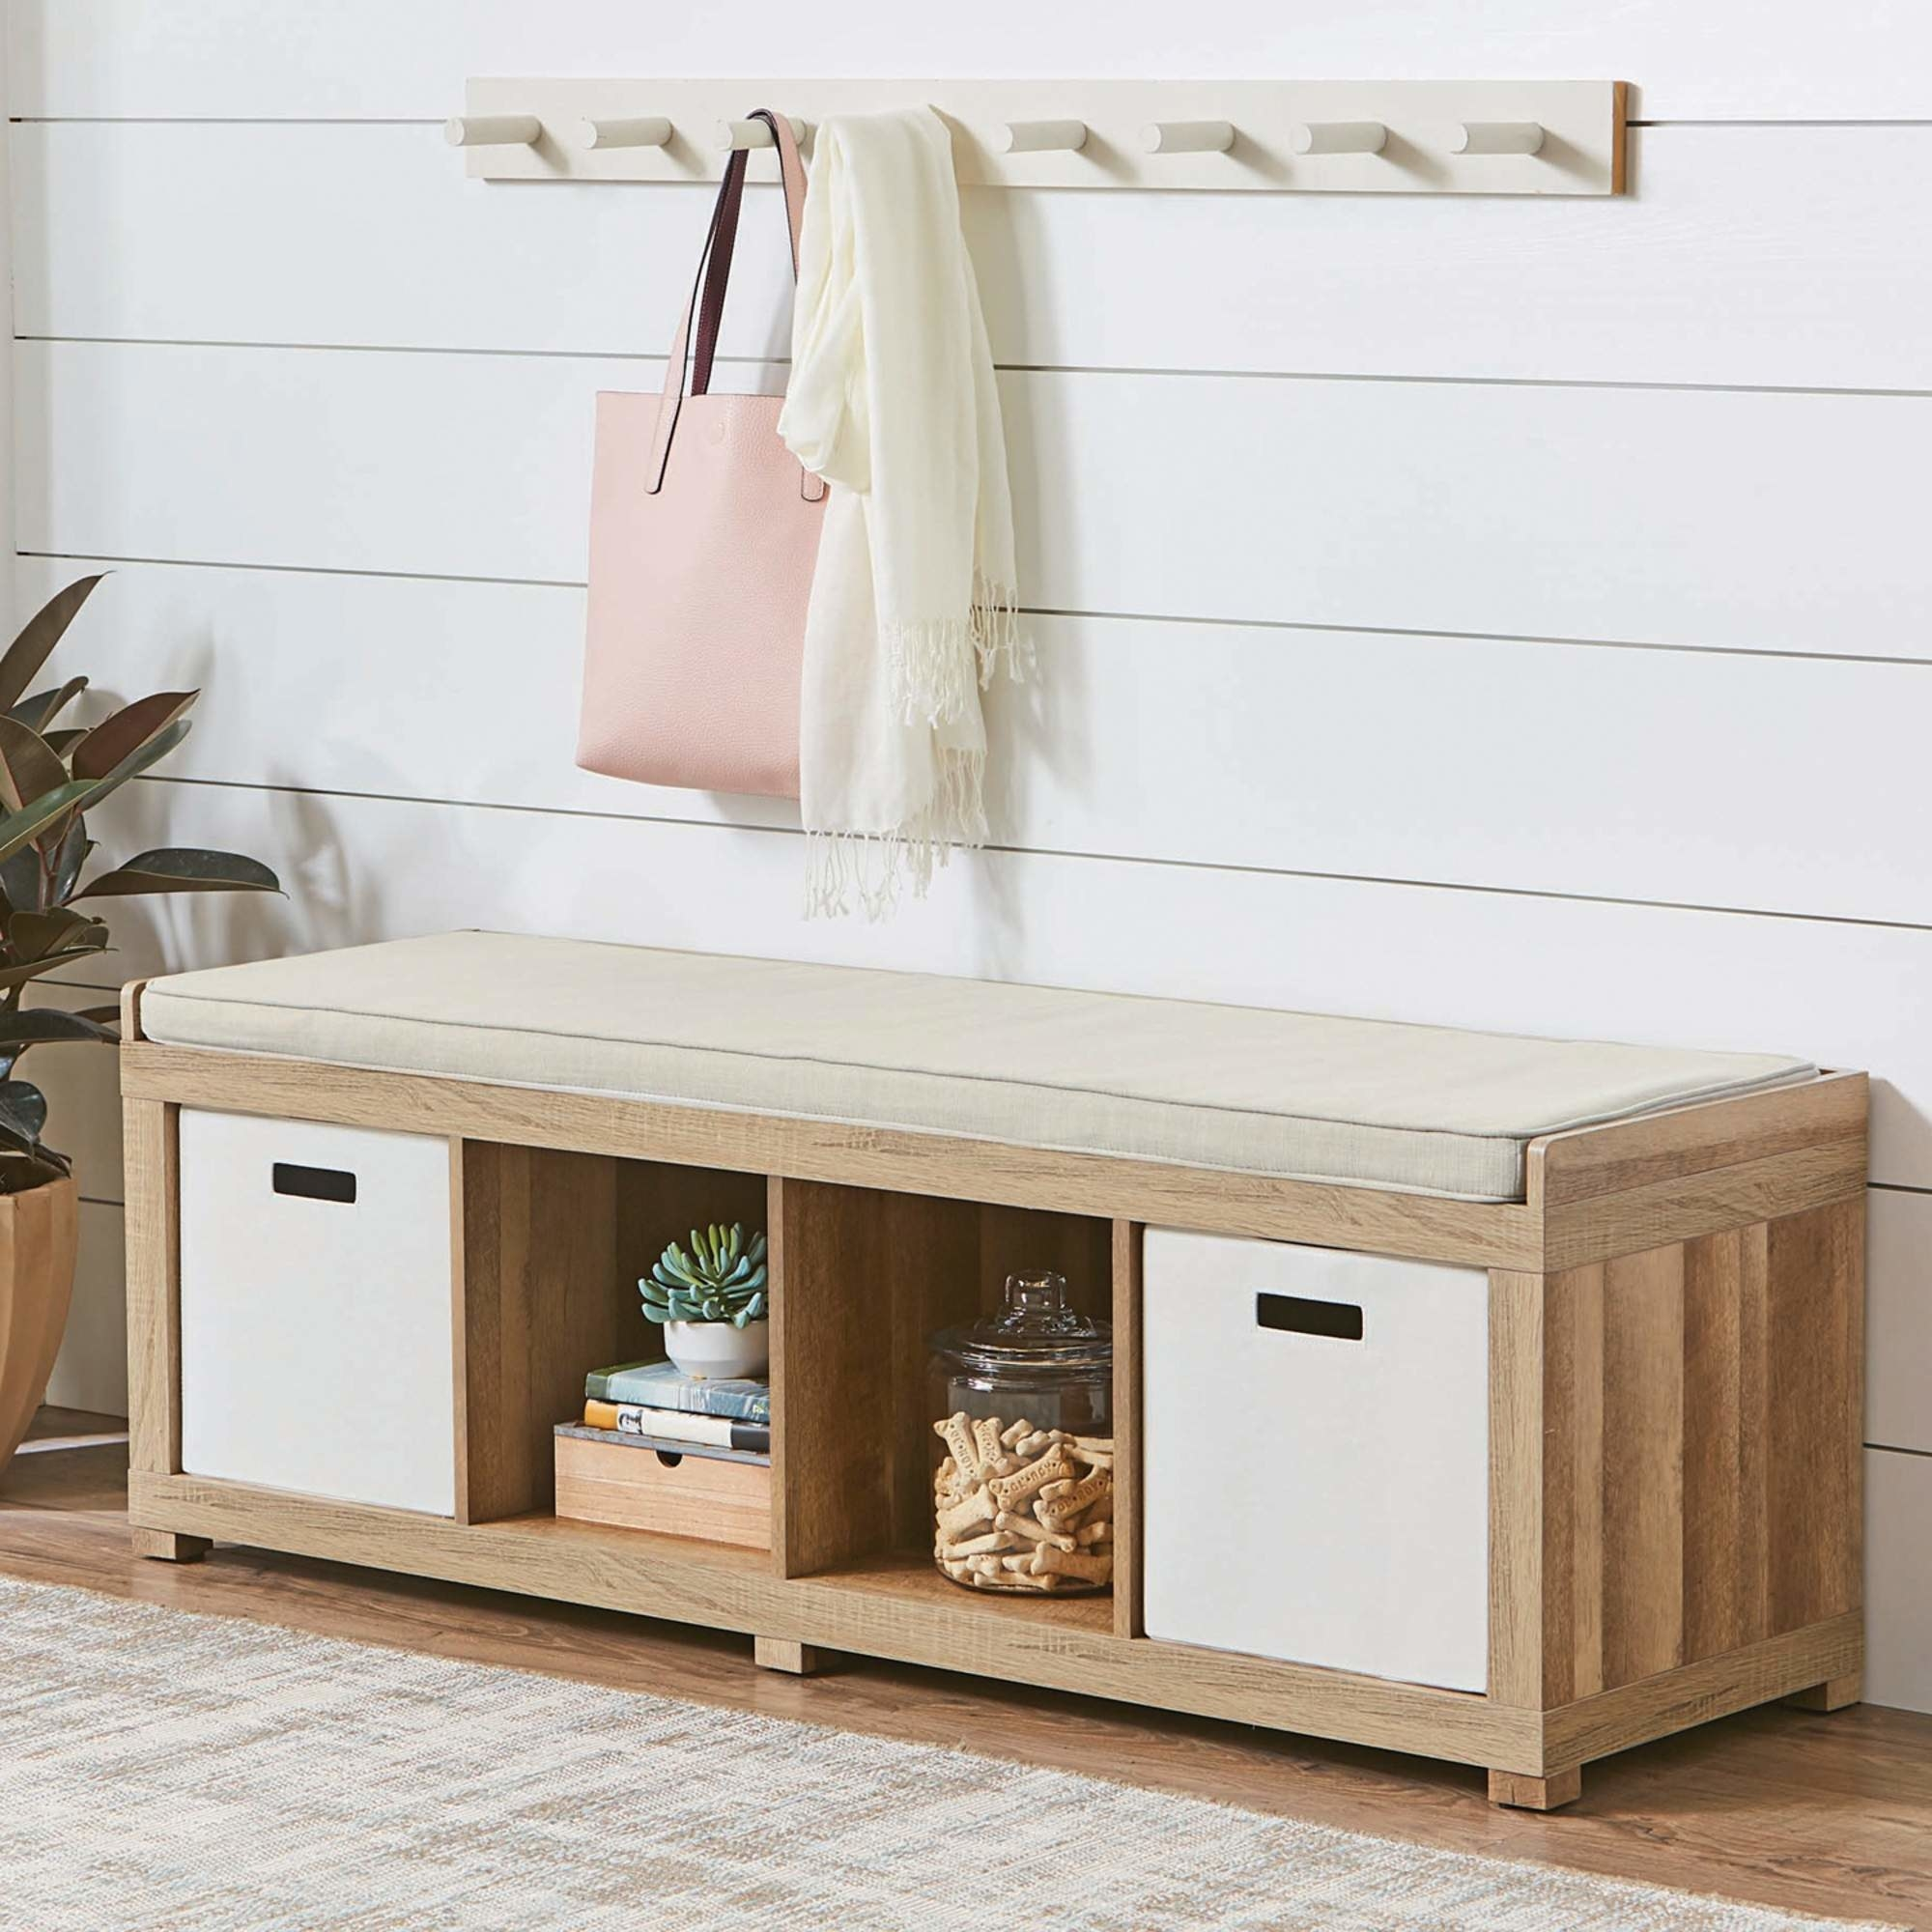 A beige storage bench with four holes for storing items